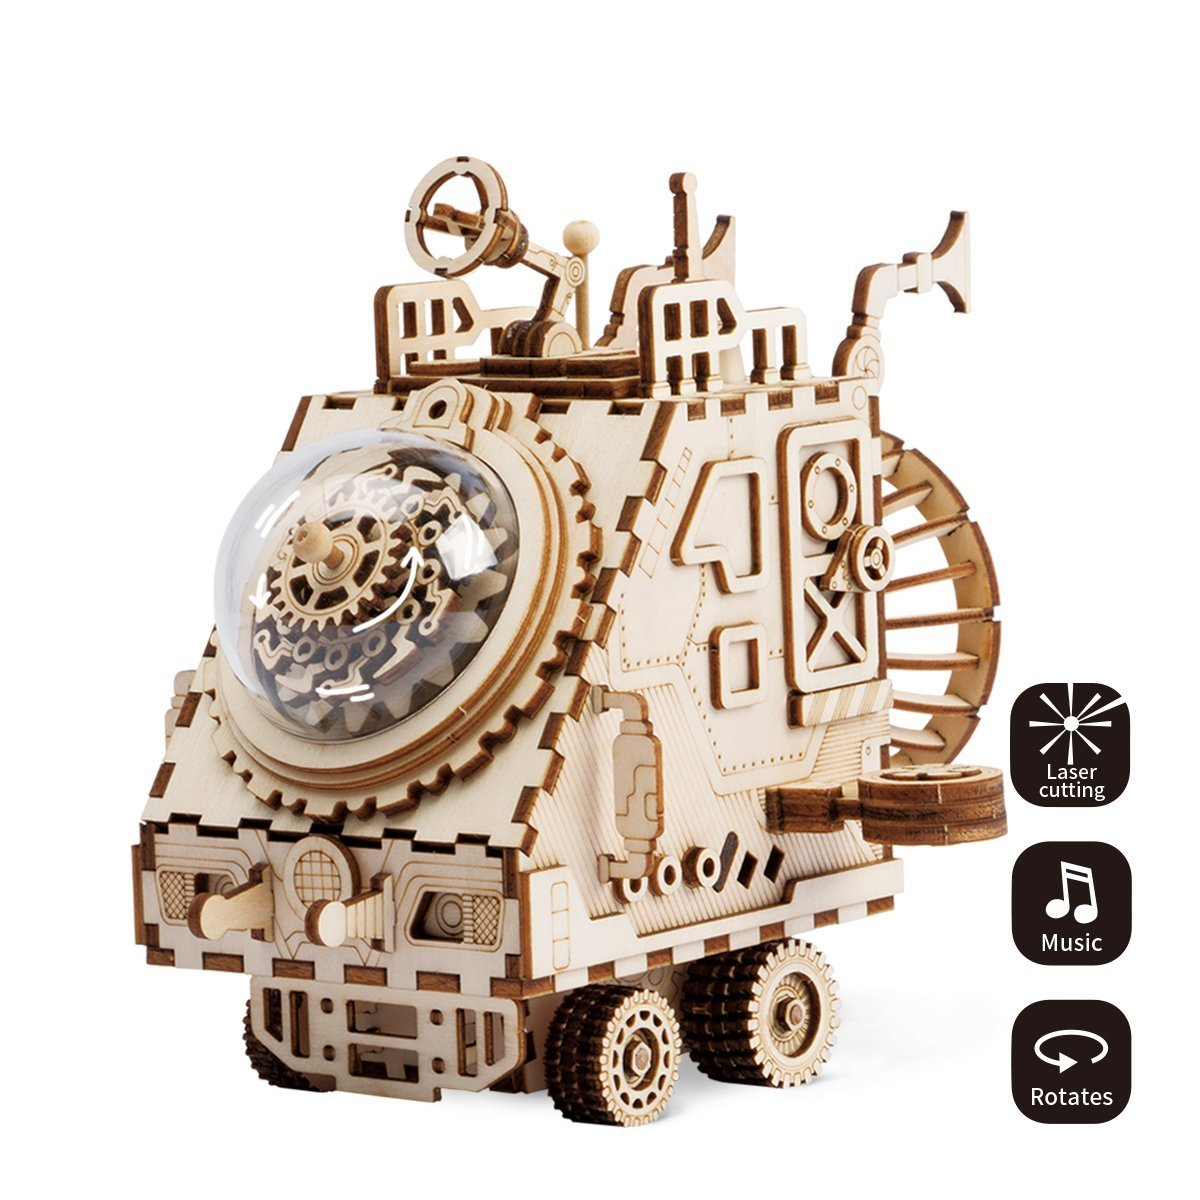 ROKR Wooden Model Kits Hand-craft Musical Box 3D Wooden Puzzle Christmas Birthday Gifts For Teen and Adult (Bunny) ROBOTIME